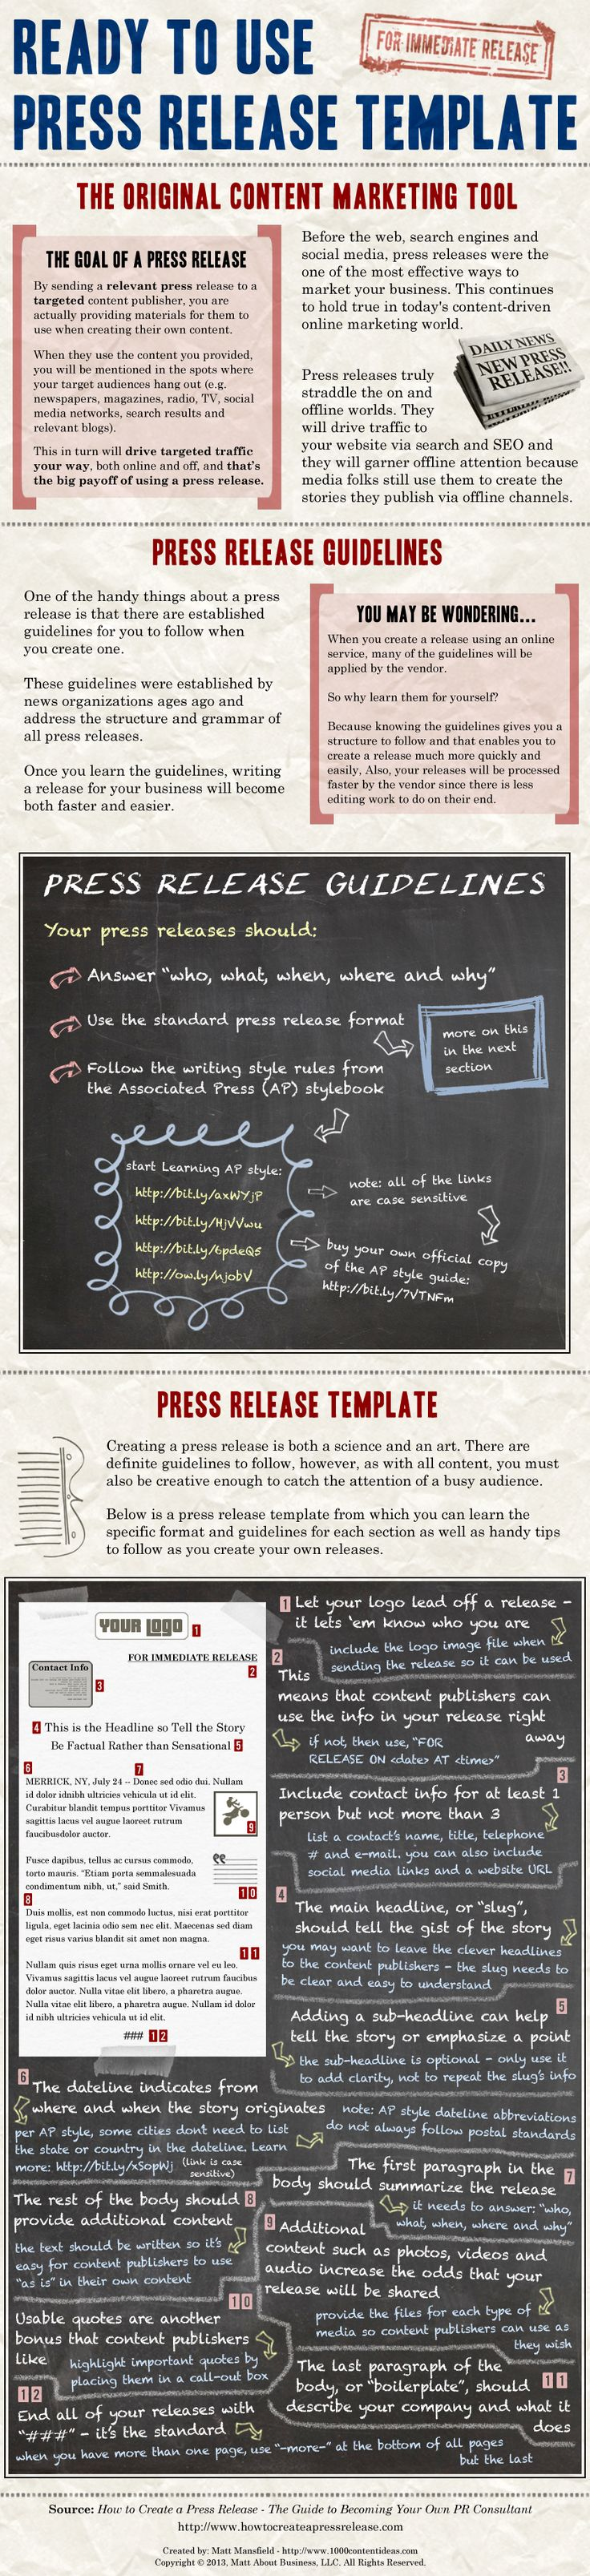 Ready to Use #PressRelease Template